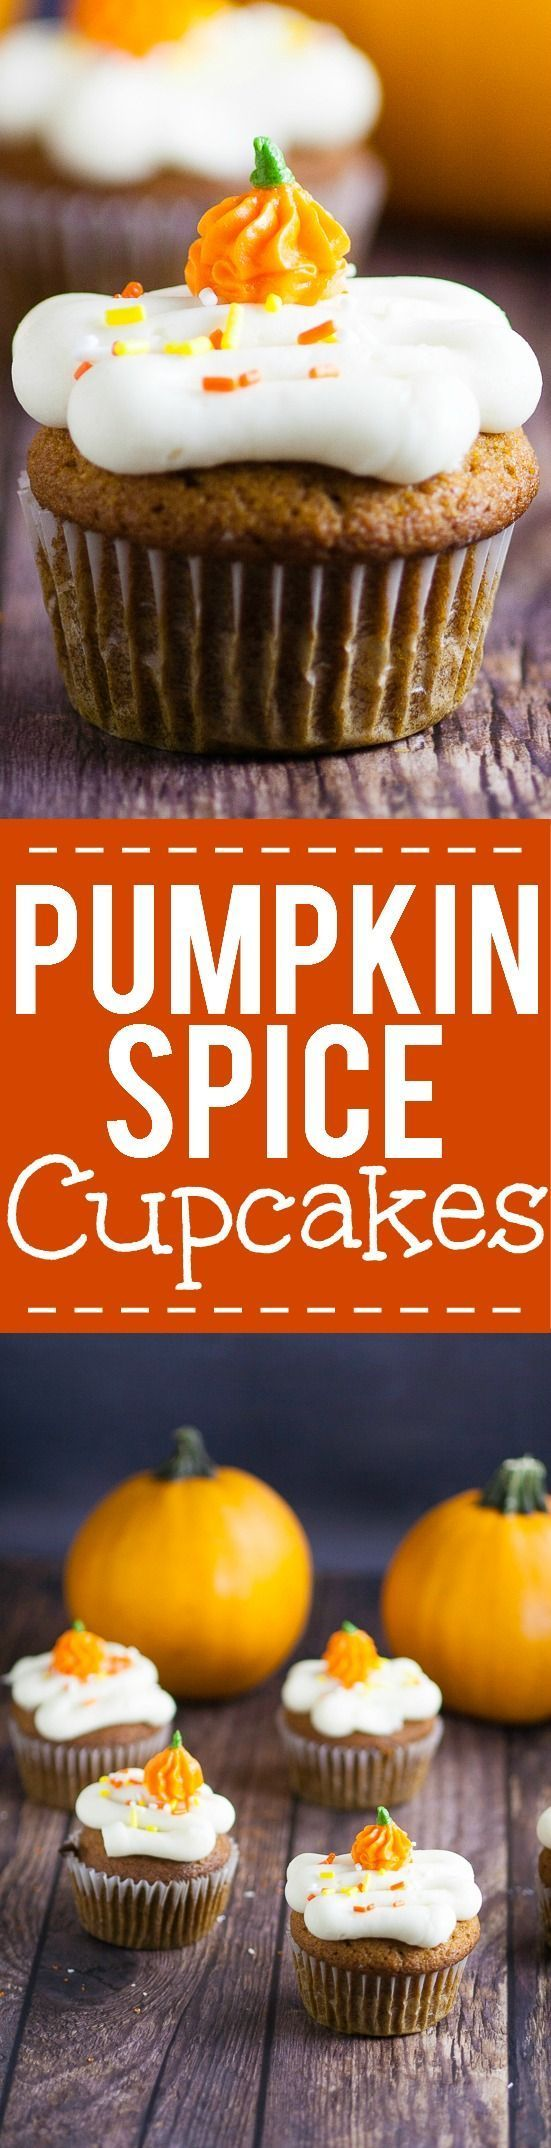 Pumpkin Spice Cupcakes #pumpkinspicecupcakes Pumpkin Spice Cupcakes Recipe - These scrumptious and festive Pumpkin Spice Cupcakes topped with cream cheese frosting are an incredibly delicious and flavorful easy dessert recipe for Fall.  Perfect for all pumpkin lovers! This is one of my favorite pumpkin recipes. Make them every fall. #pumpkinspicecupcakes Pumpkin Spice Cupcakes #pumpkinspicecupcakes Pumpkin Spice Cupcakes Recipe - These scrumptious and festive Pumpkin Spice Cupcakes topped wit #pumpkinspicecupcakes